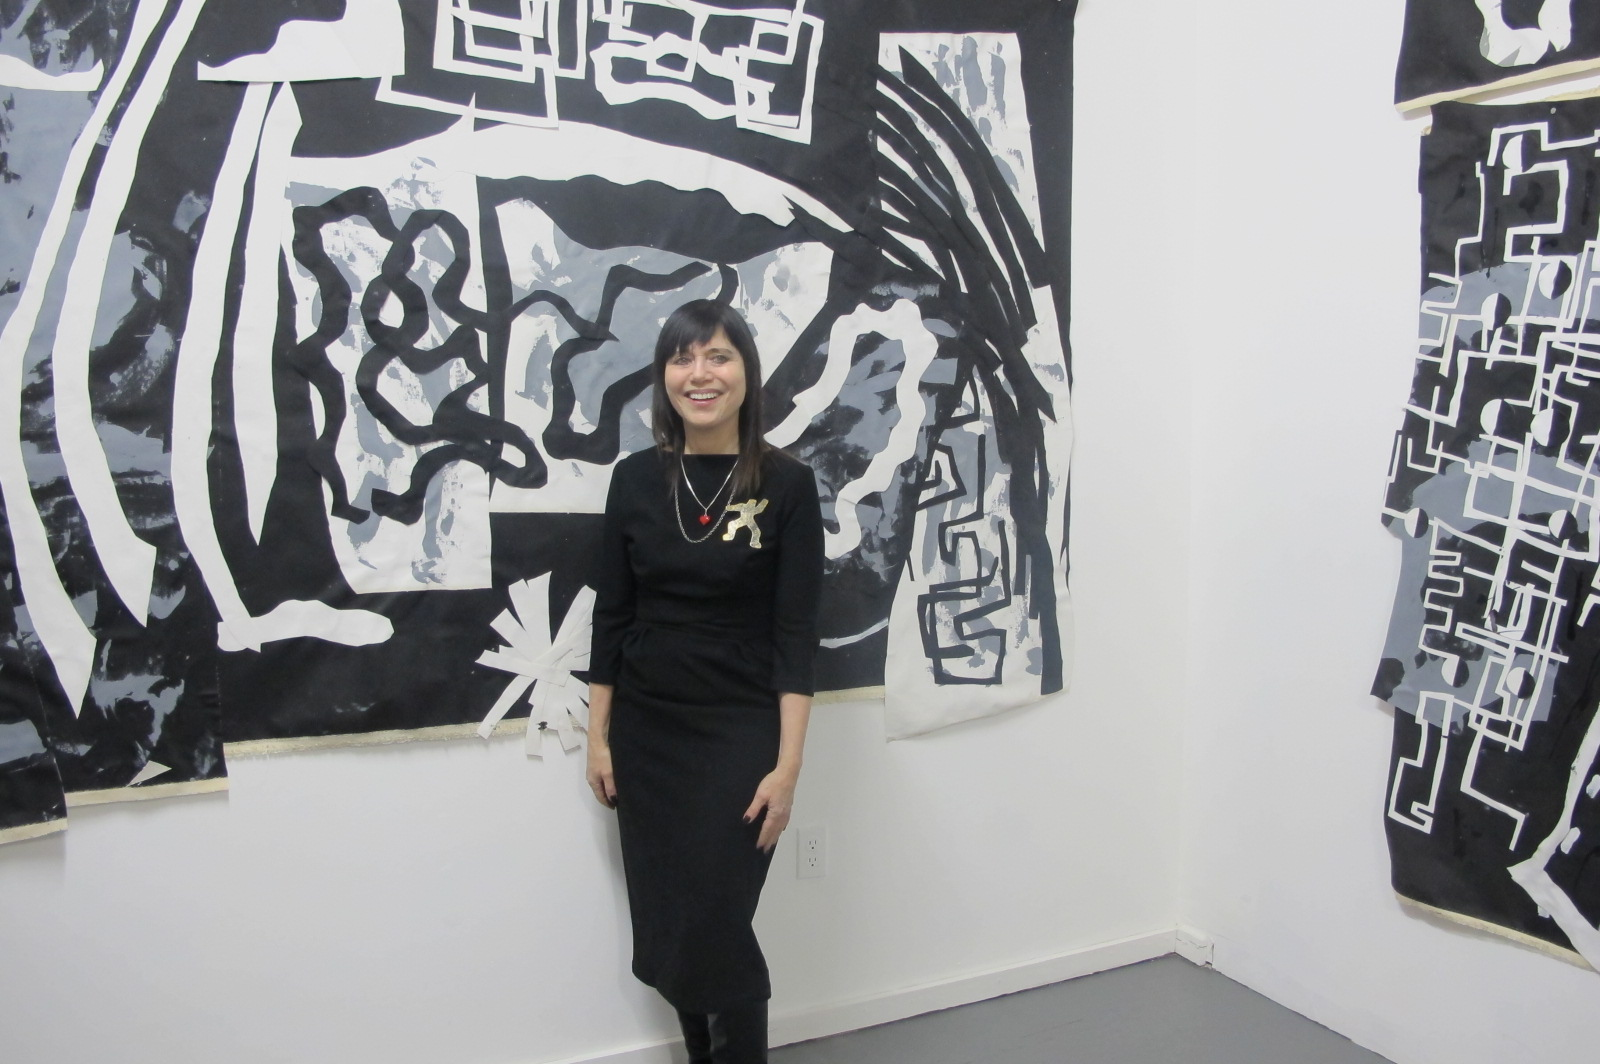 Judy Rifka with her work in the main Trestle Project space